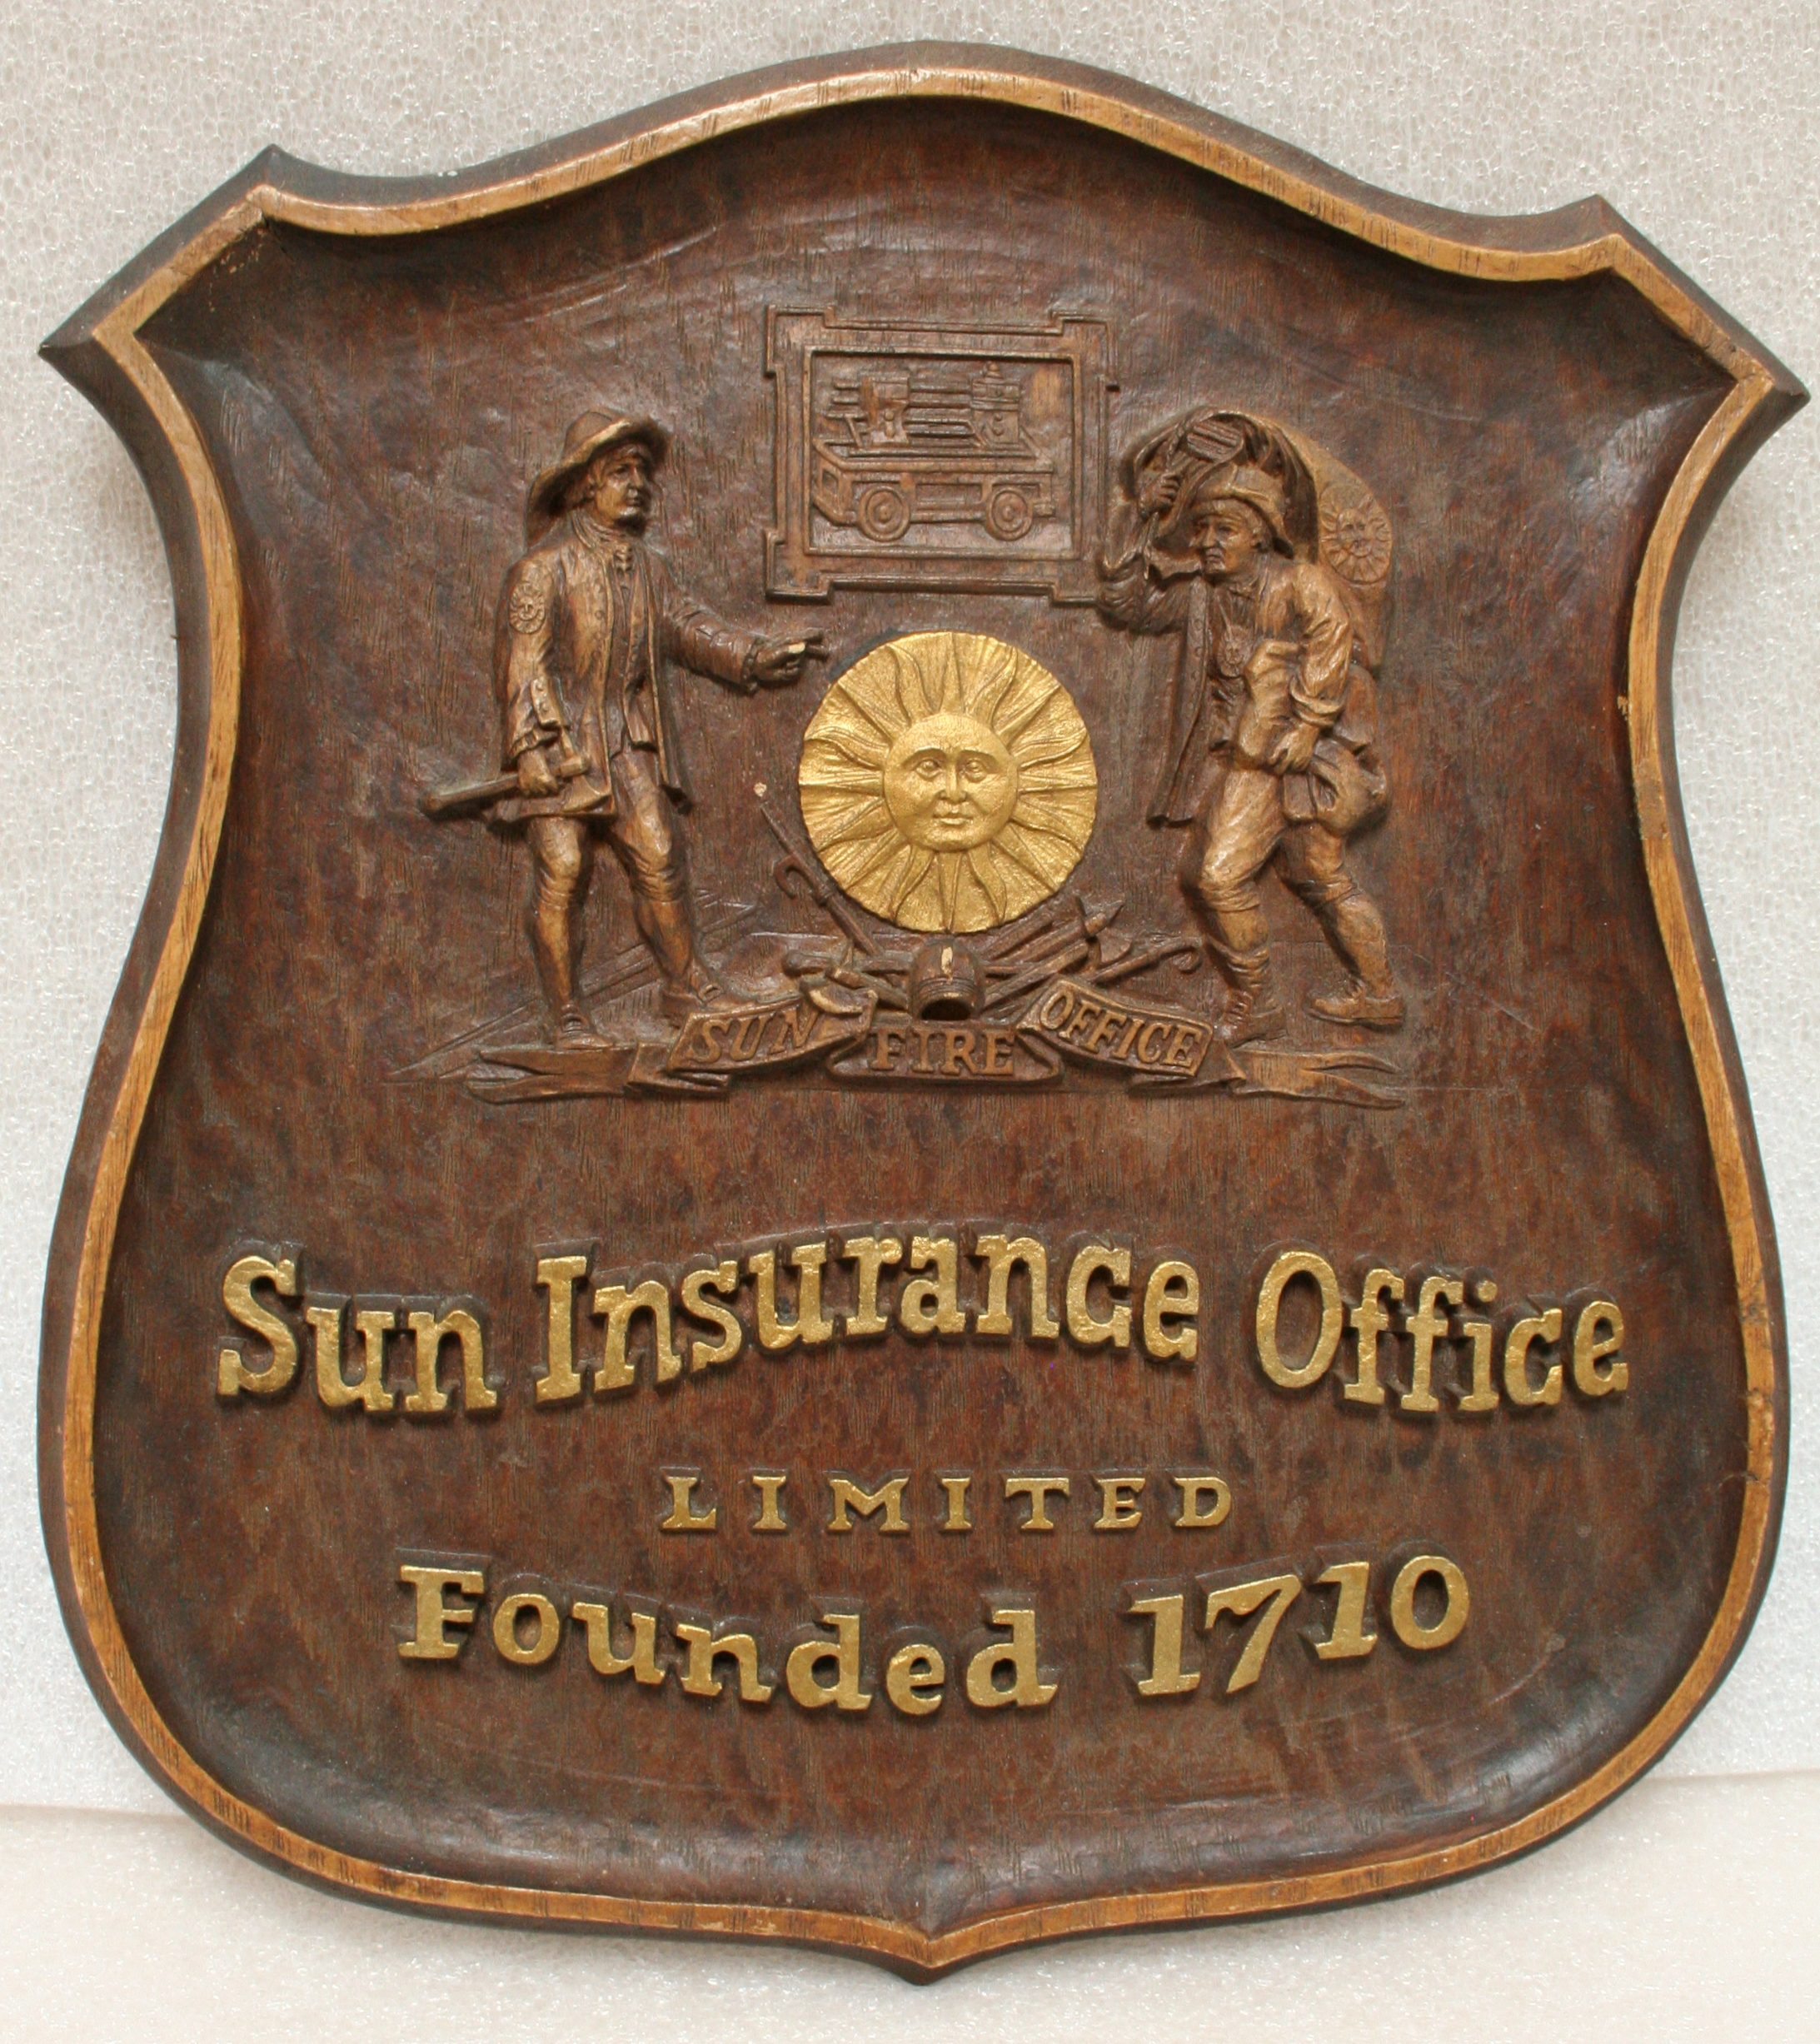 Sun Insurance Office sign from the 1880s